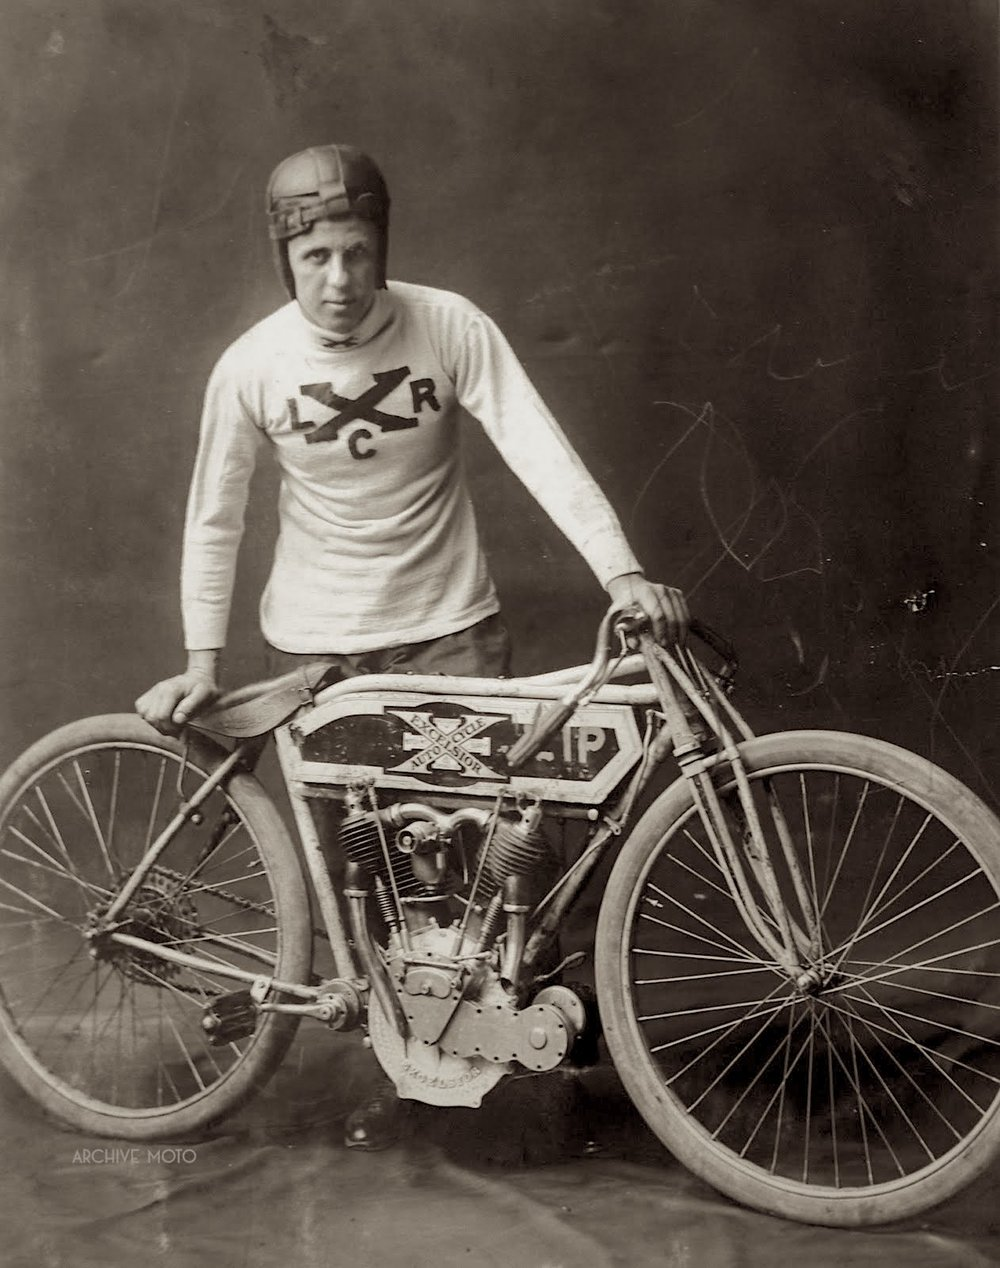 For decades credited as an unknown Excelsior racer, here is Curley Fredericks in the early days of his lengthy professional racing career posing with an Excelsior 7 ca. 1913.